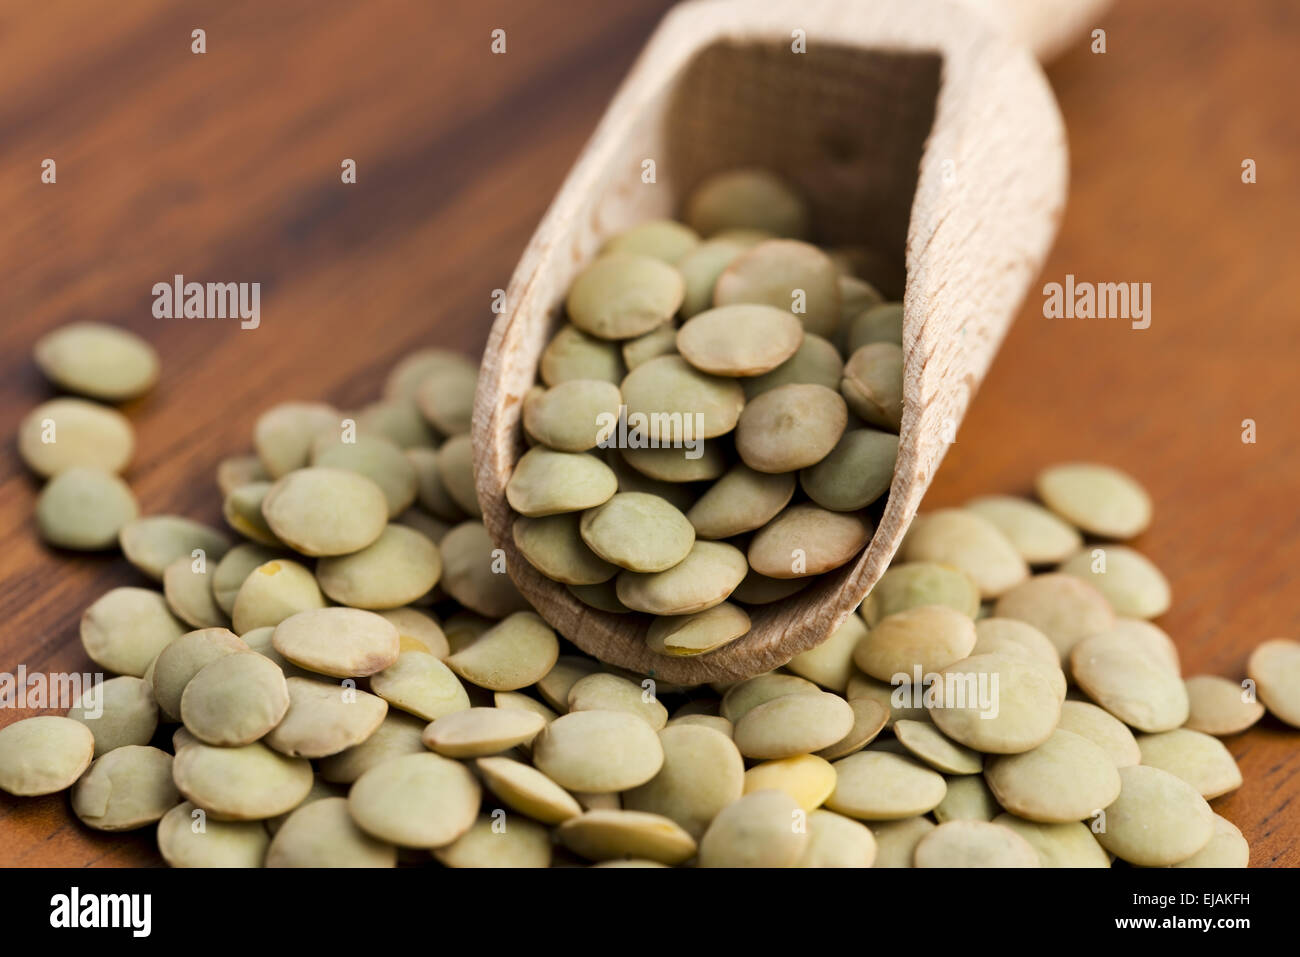 Dry Organic Green Lentils - Stock Image